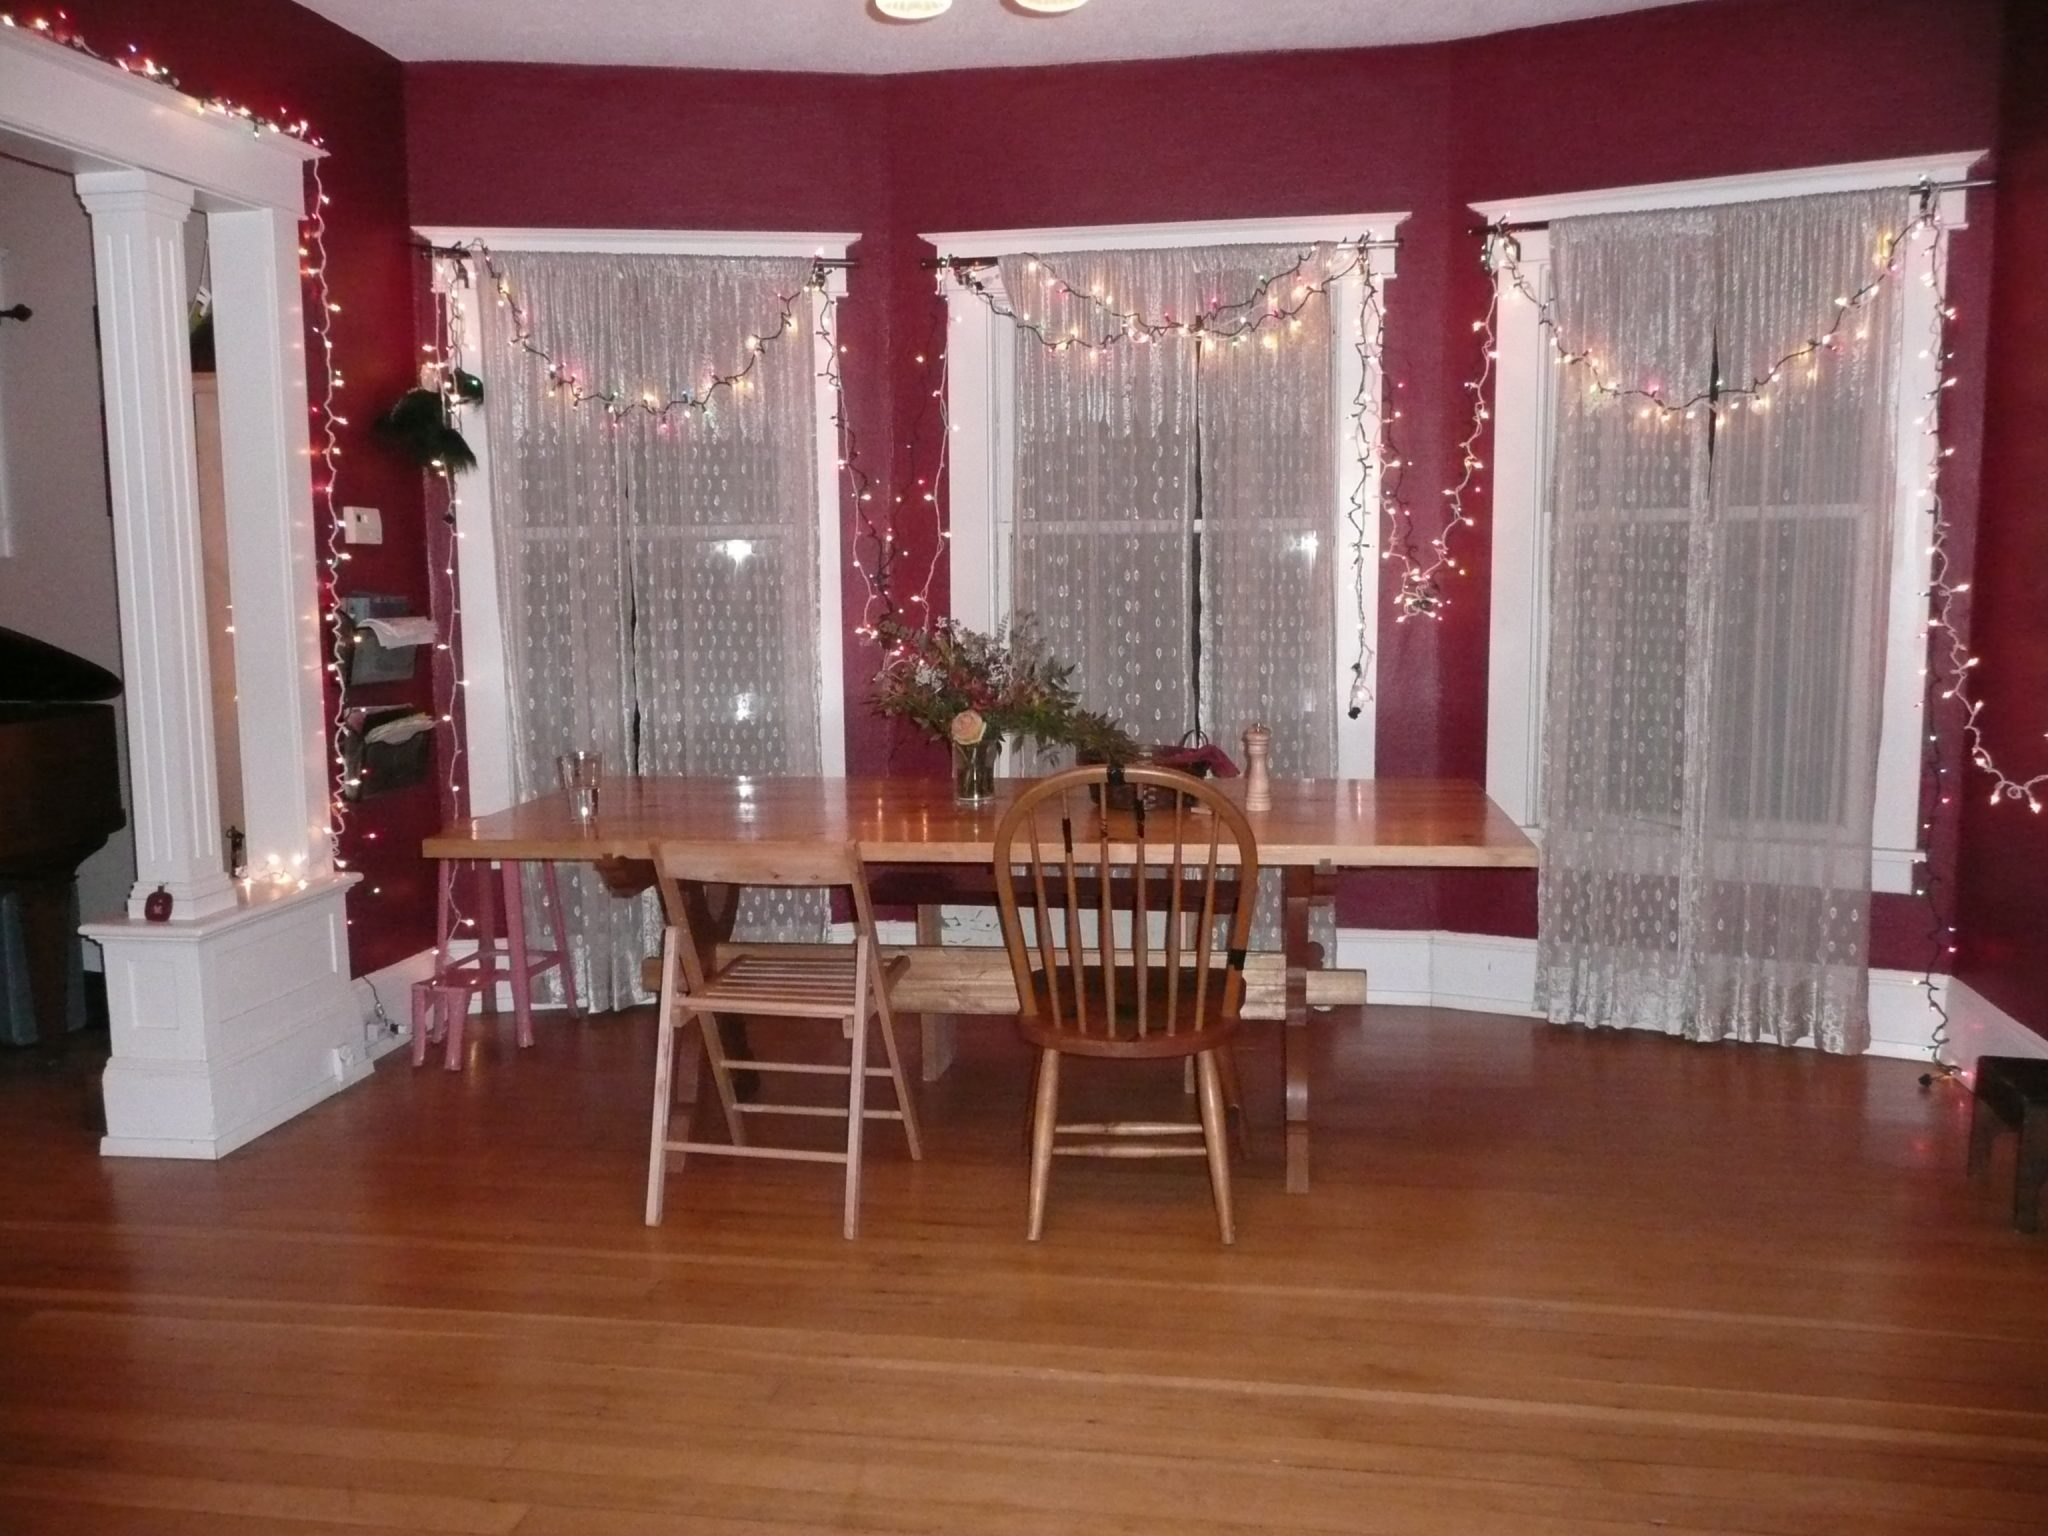 Ideas para decorar cortinas en navidad 2016 - Ideas de cortinas para salon ...